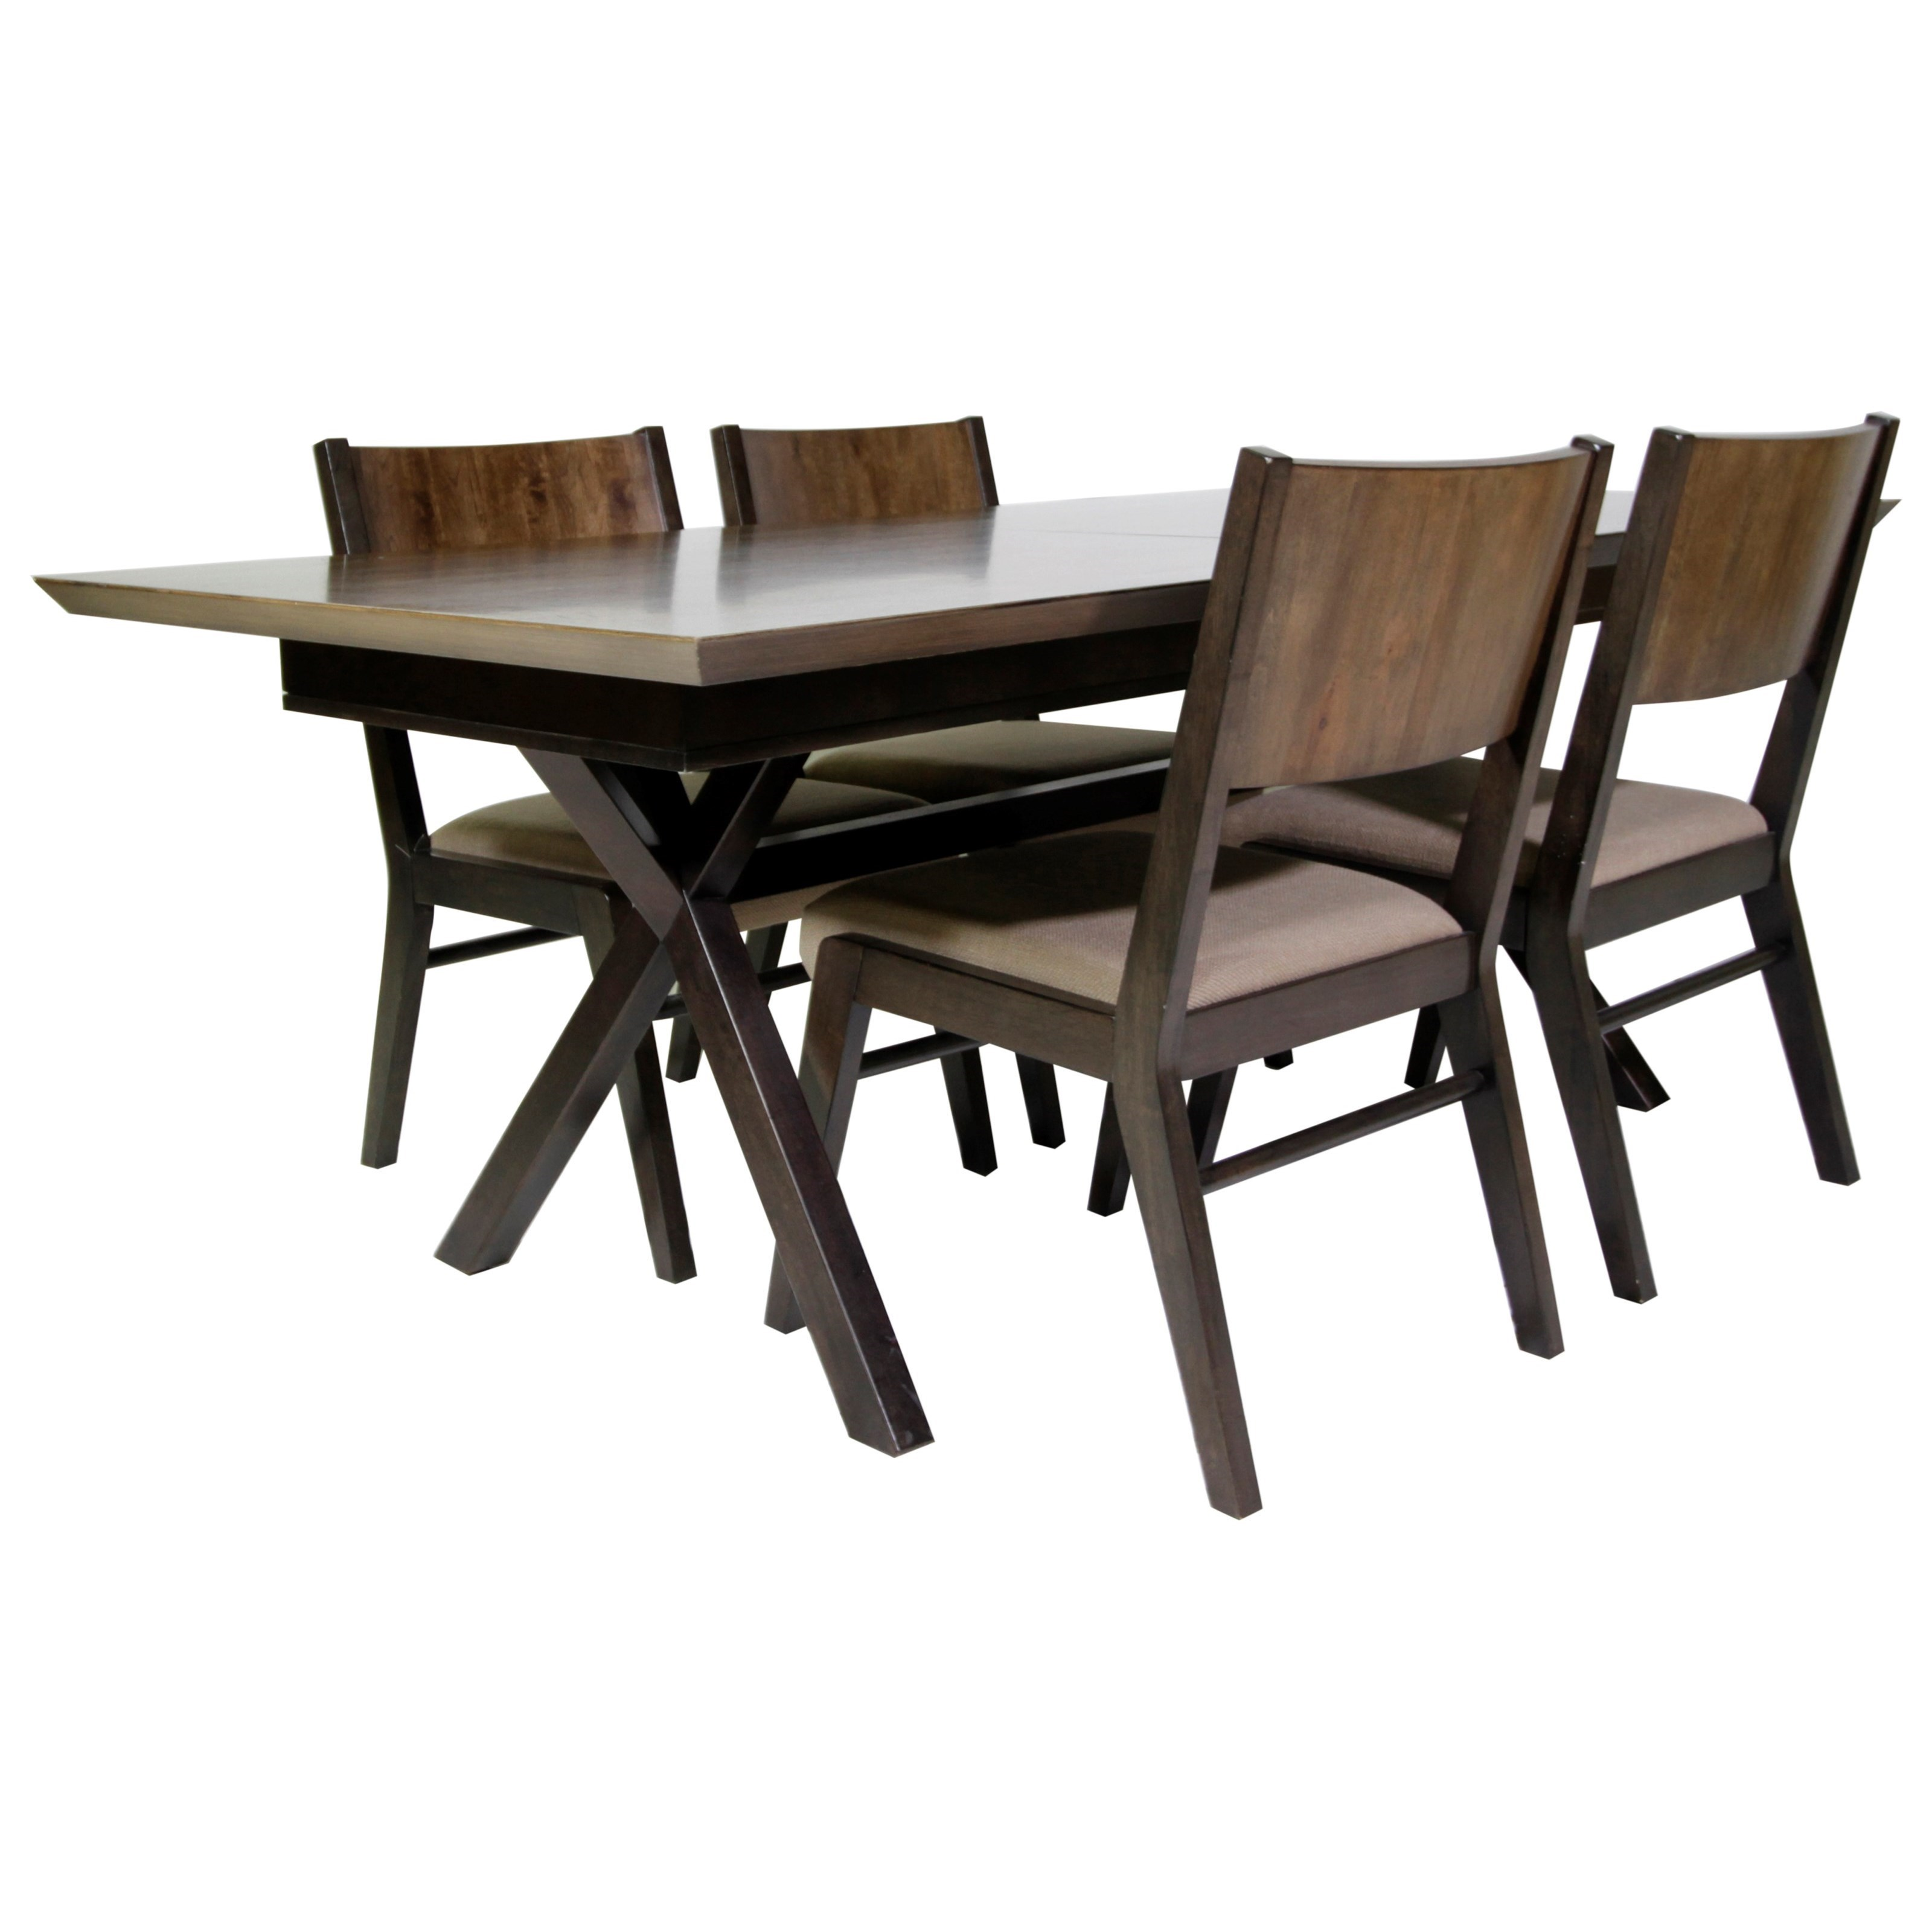 Legacy classic kateri 5 piece trestle table dining set for Legacy classic dining table